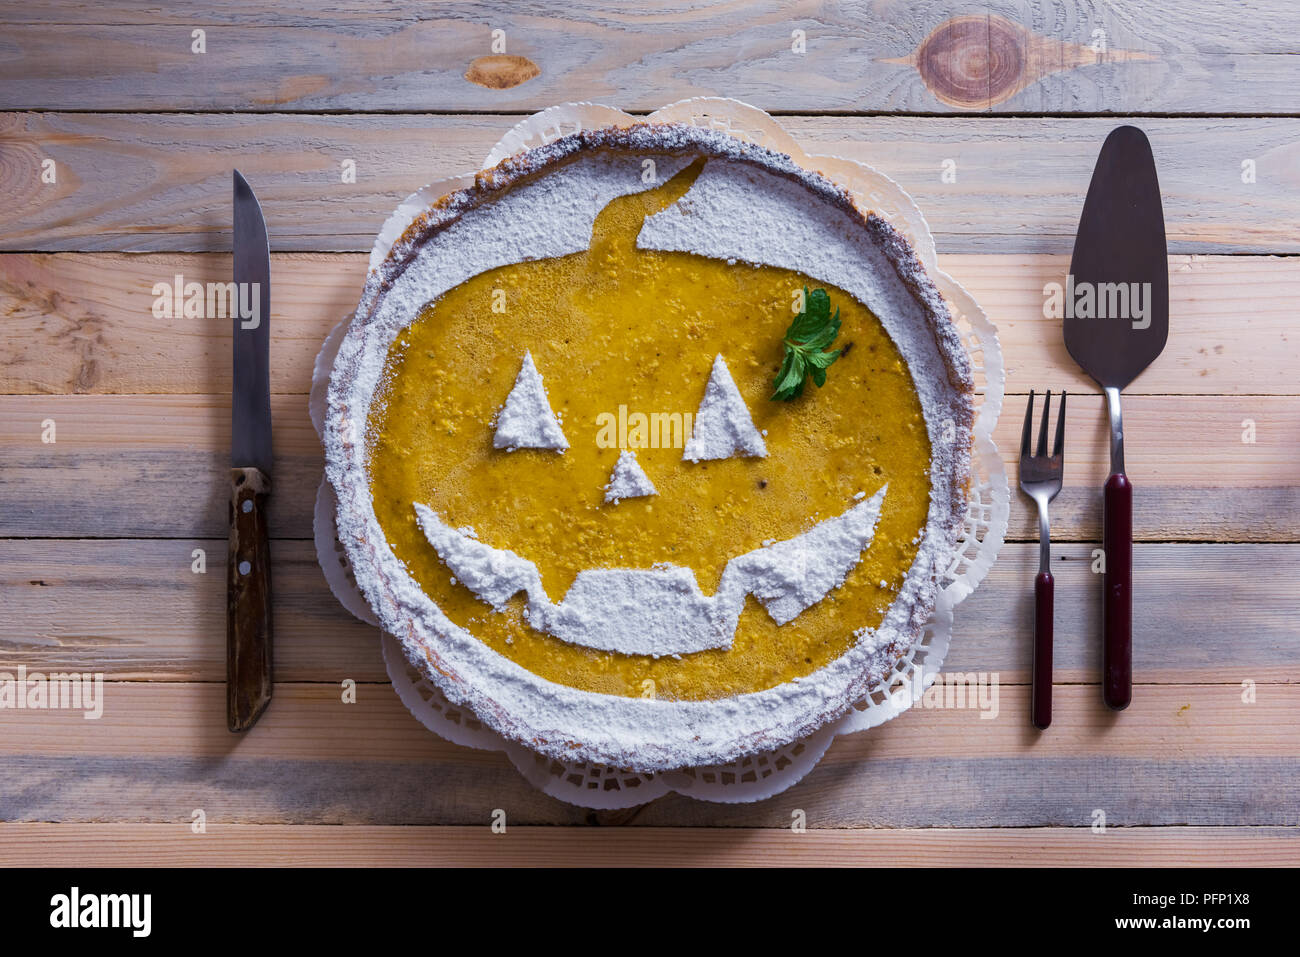 Cream Pie Funny Immagini   Cream Pie Funny Fotos Stock - Alamy bc78e69330b0